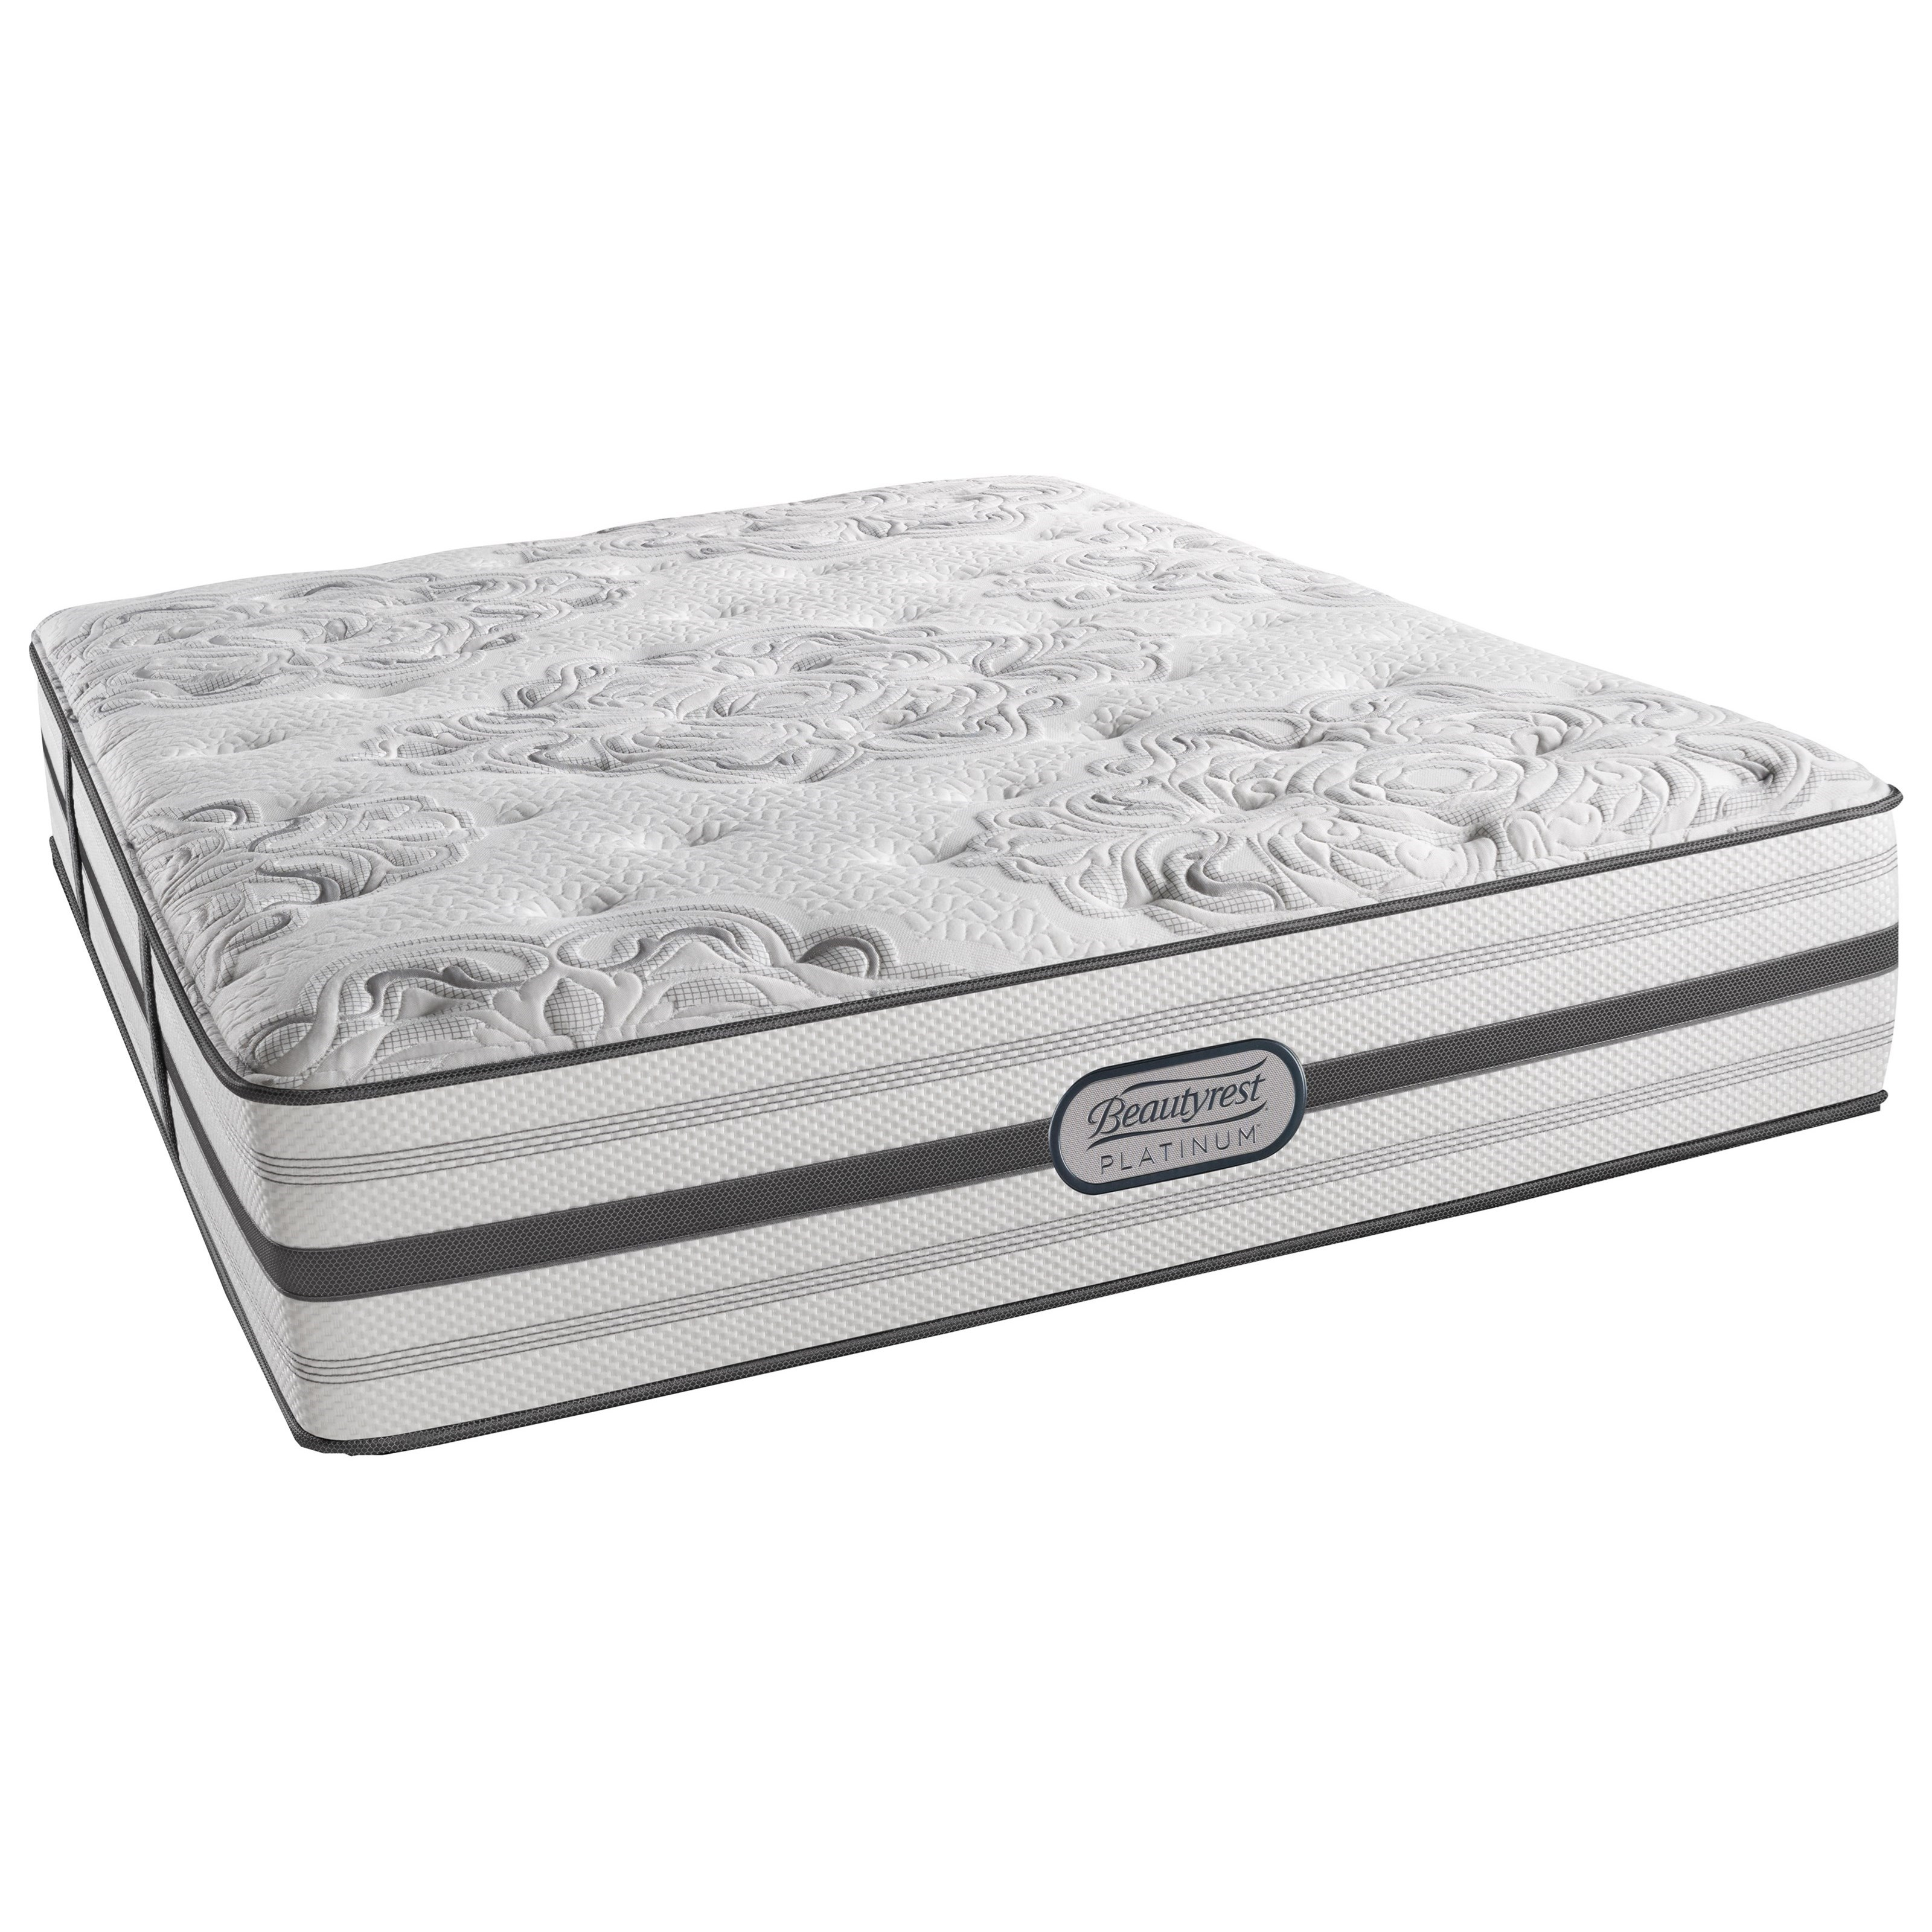 "Beautyrest Platinum Brittany Twin Luxury Firm 14.5"" Mattress - Item Number: LV2LFM-T"